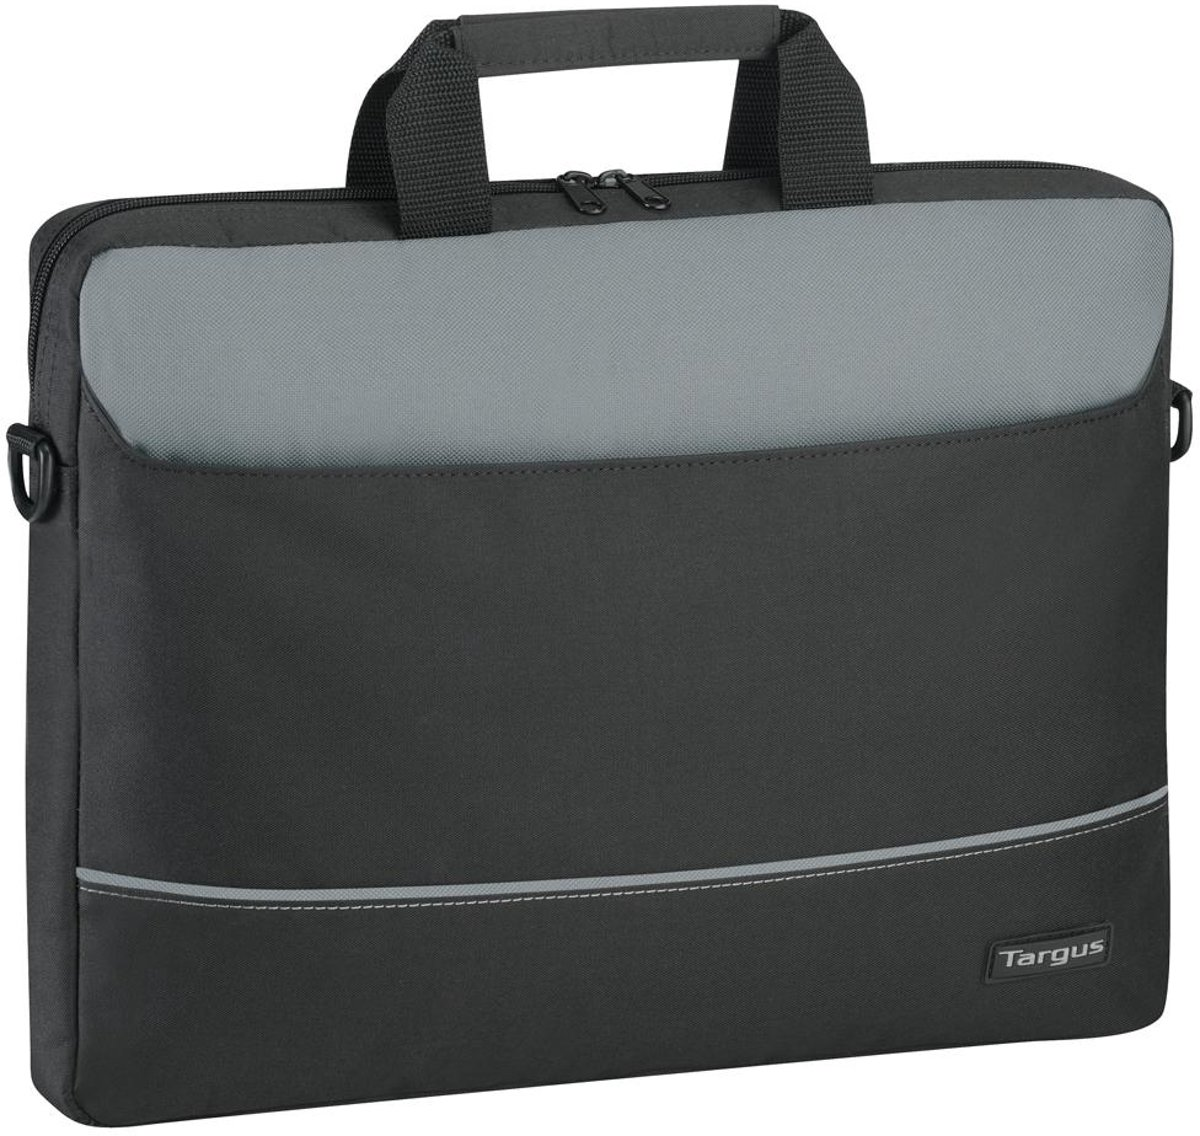 Targus Intellect - Laptoptas - 15.6